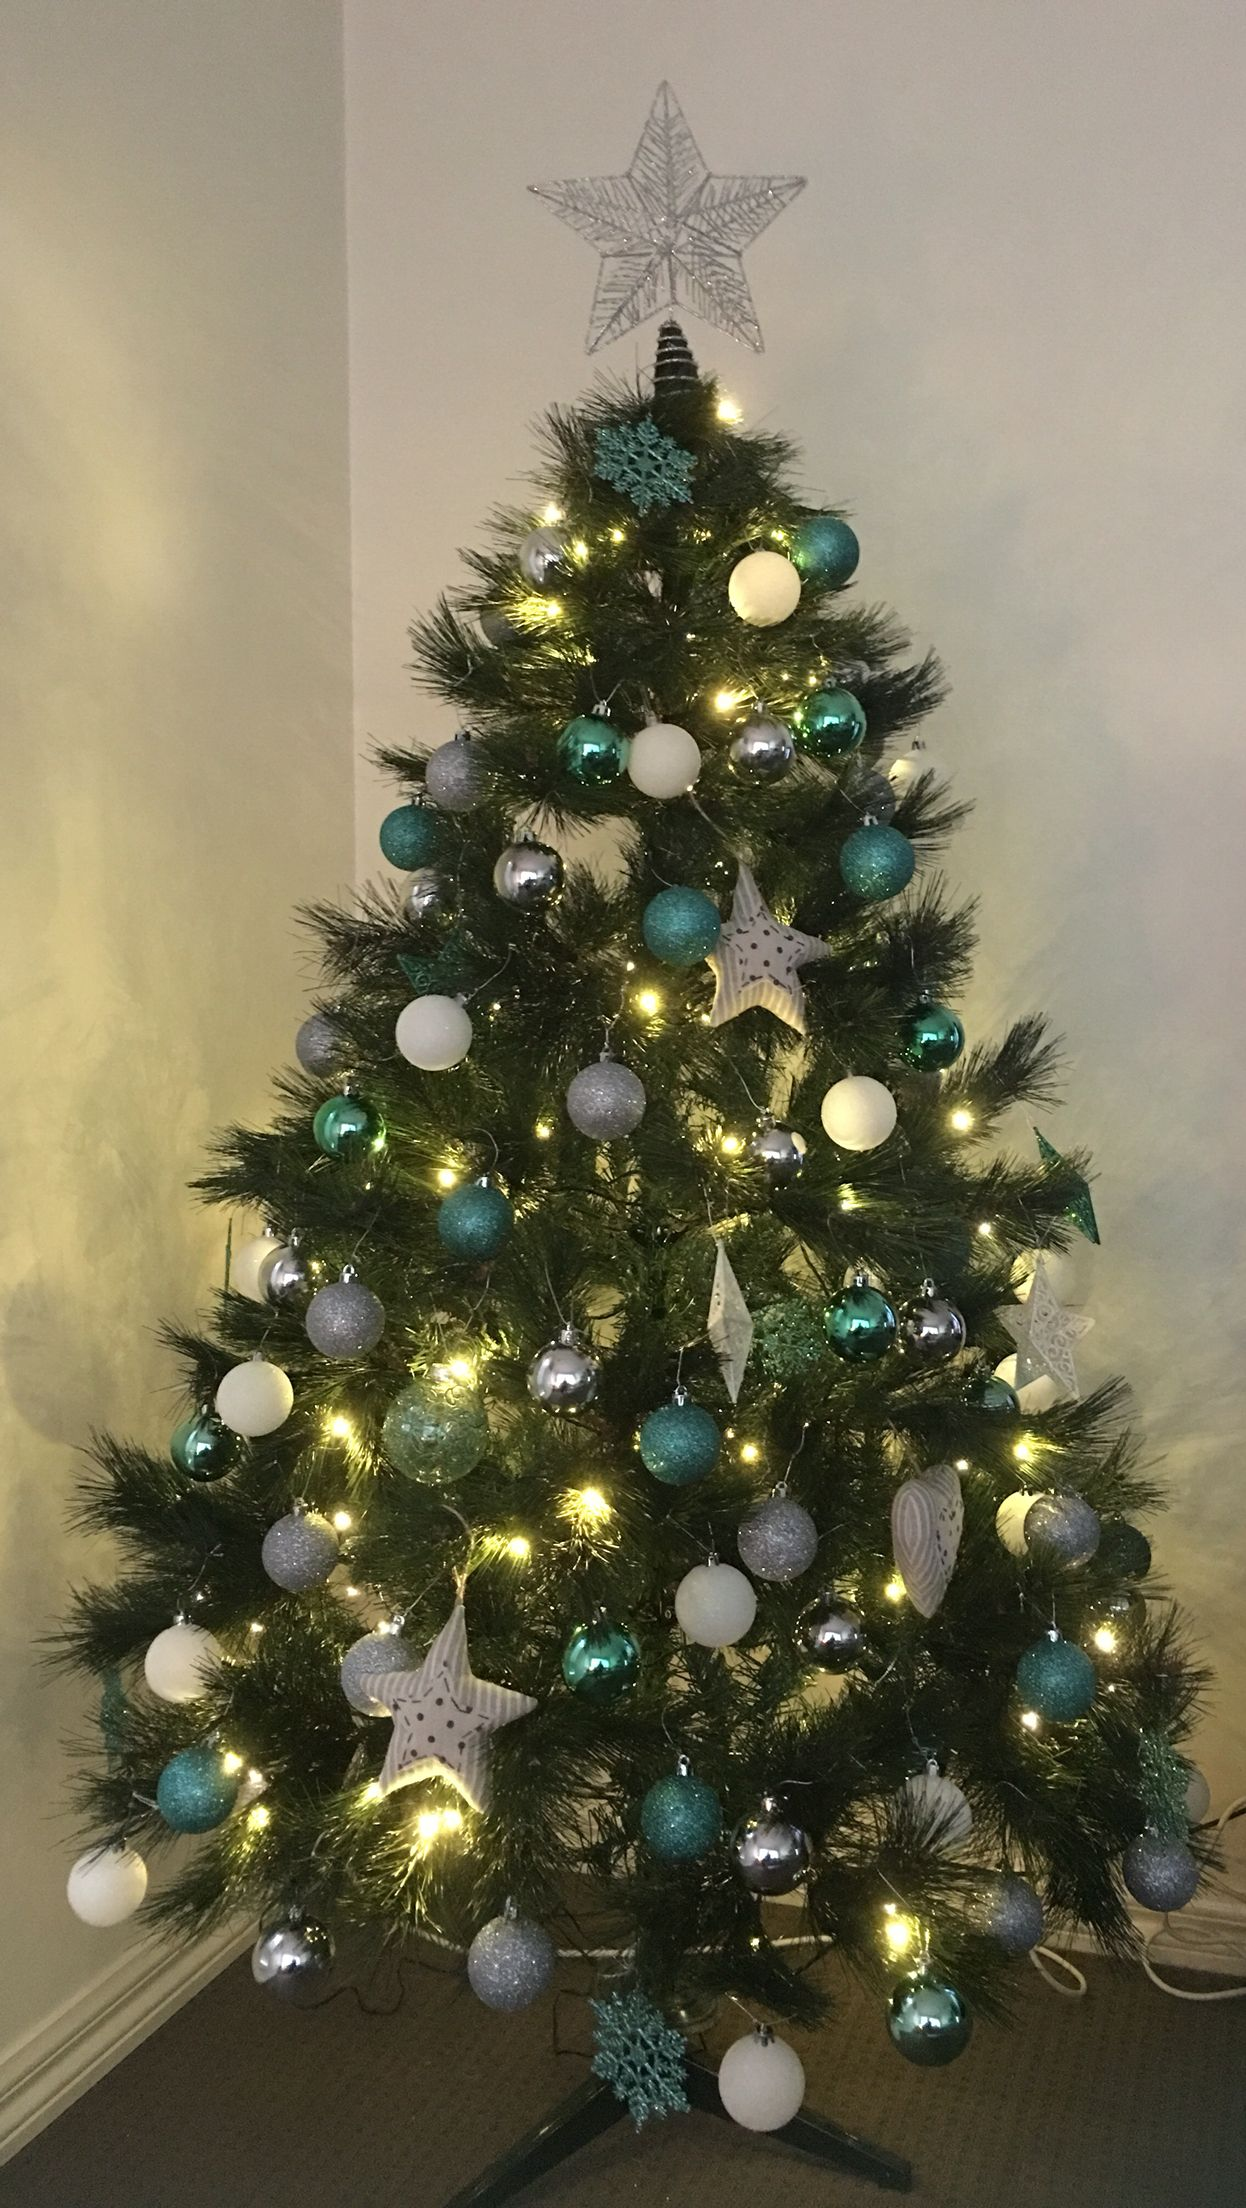 Aqua themed Christmas tree. Tree and decorations from